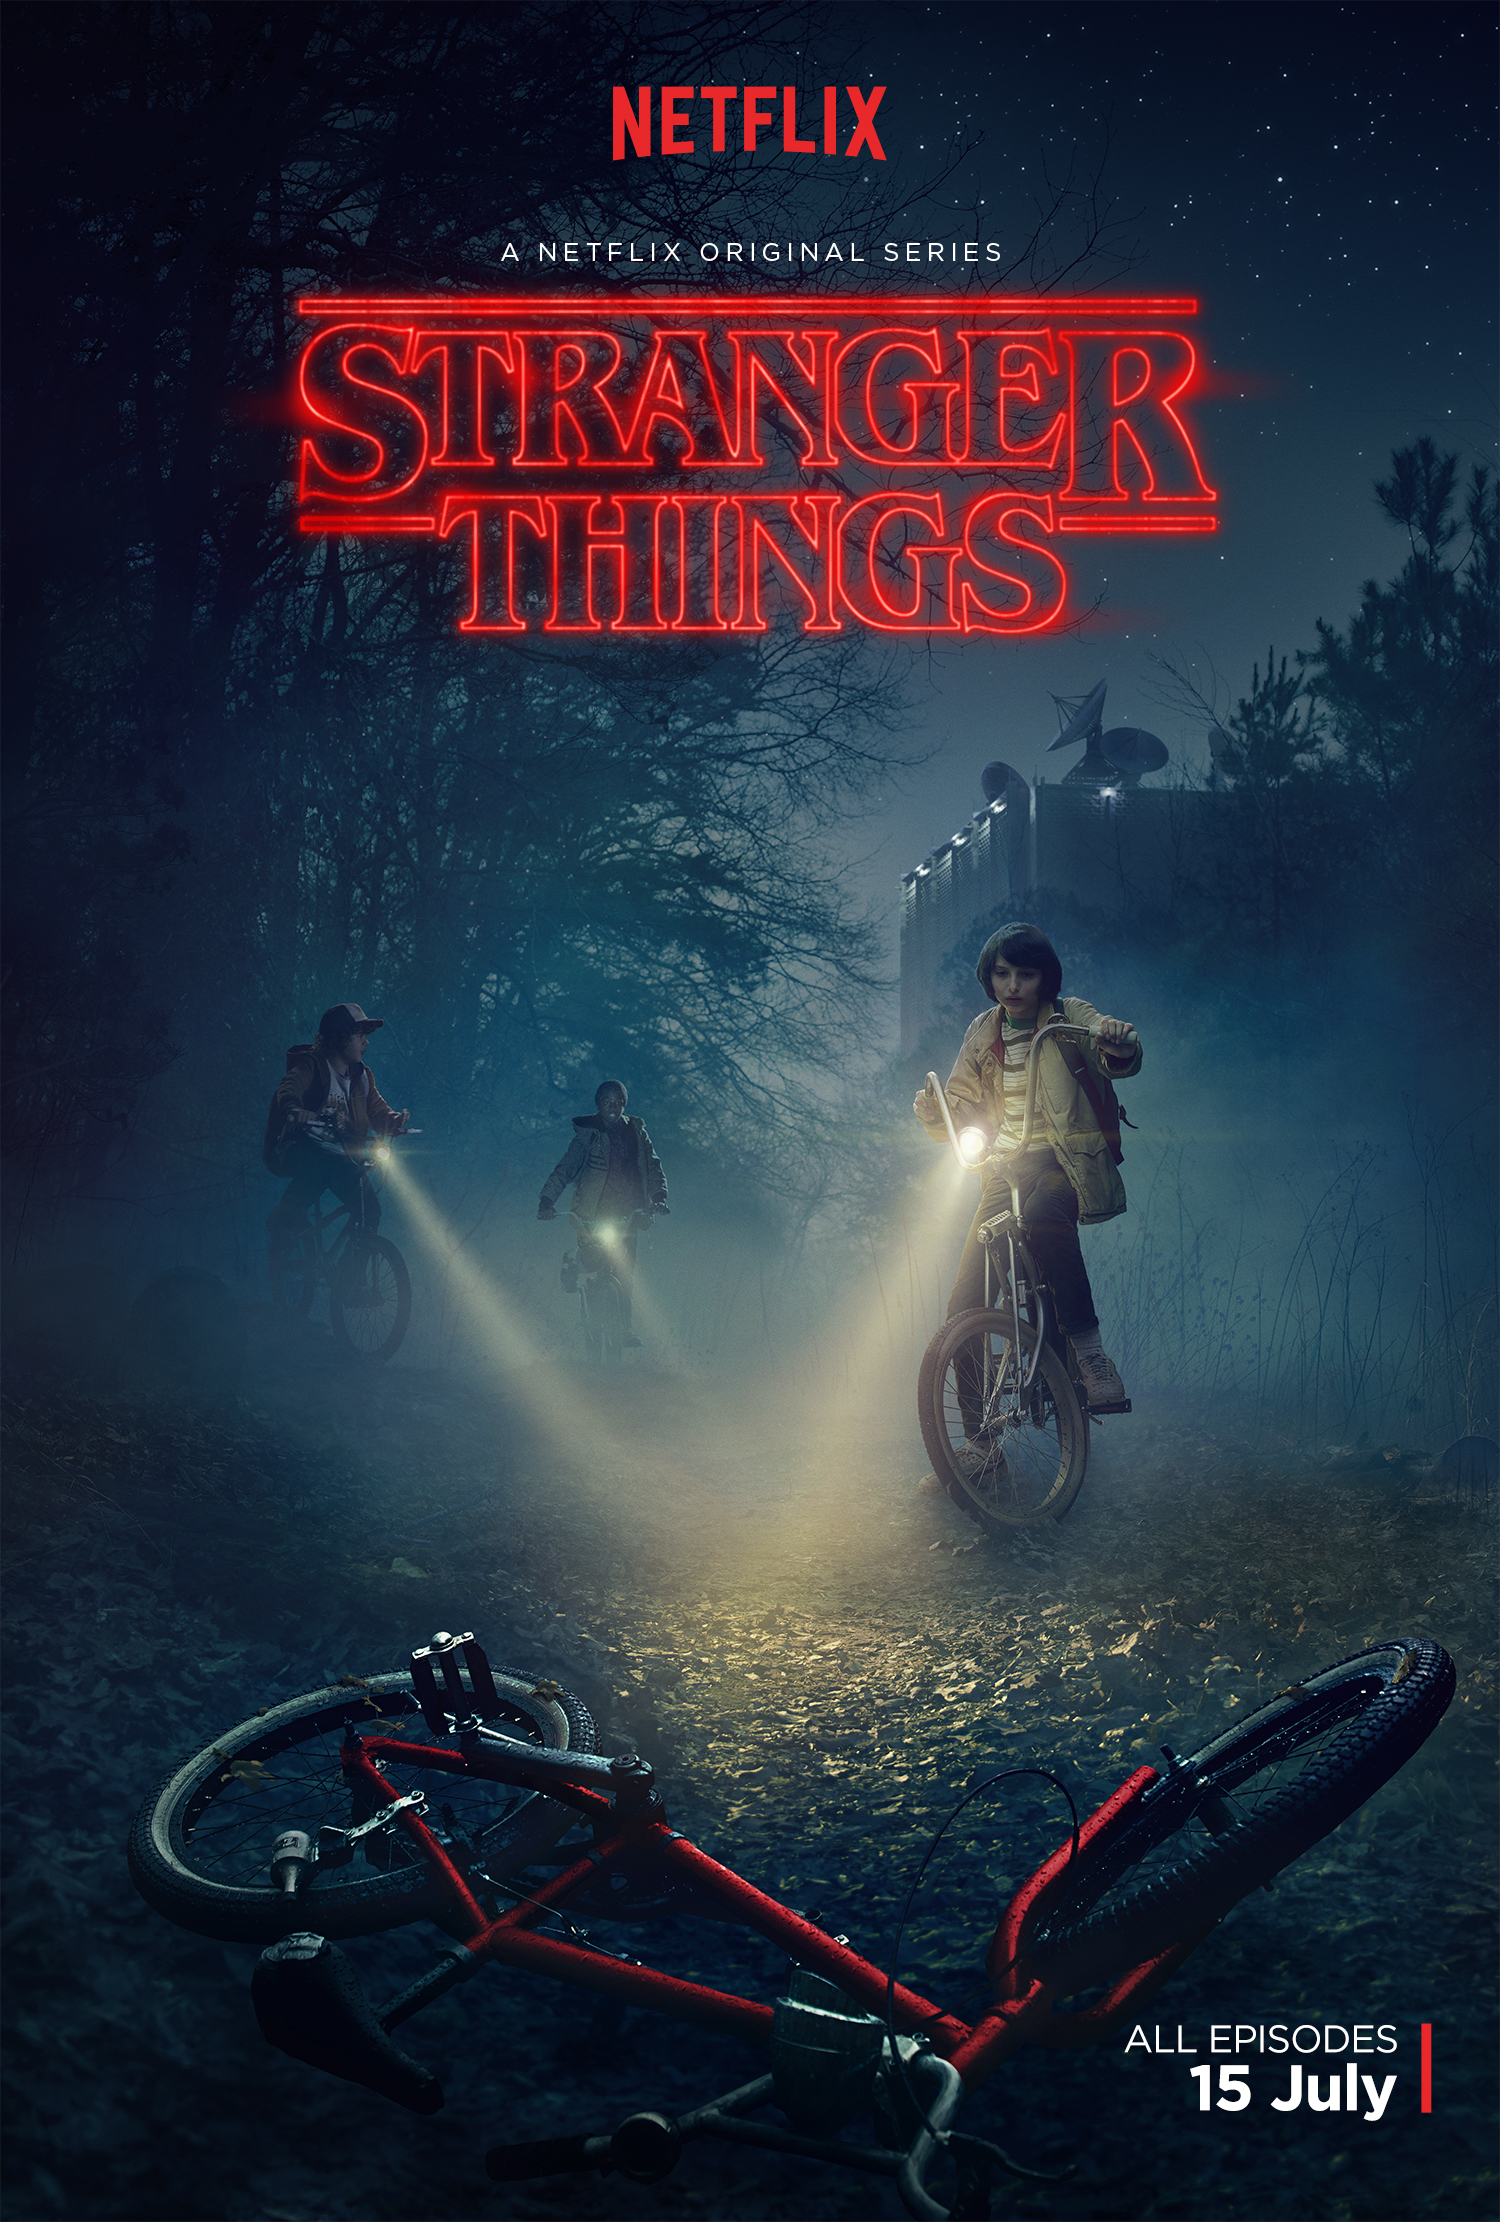 Netflix's 'Stranger Things' Is Now Coming To The Snarking Dead!